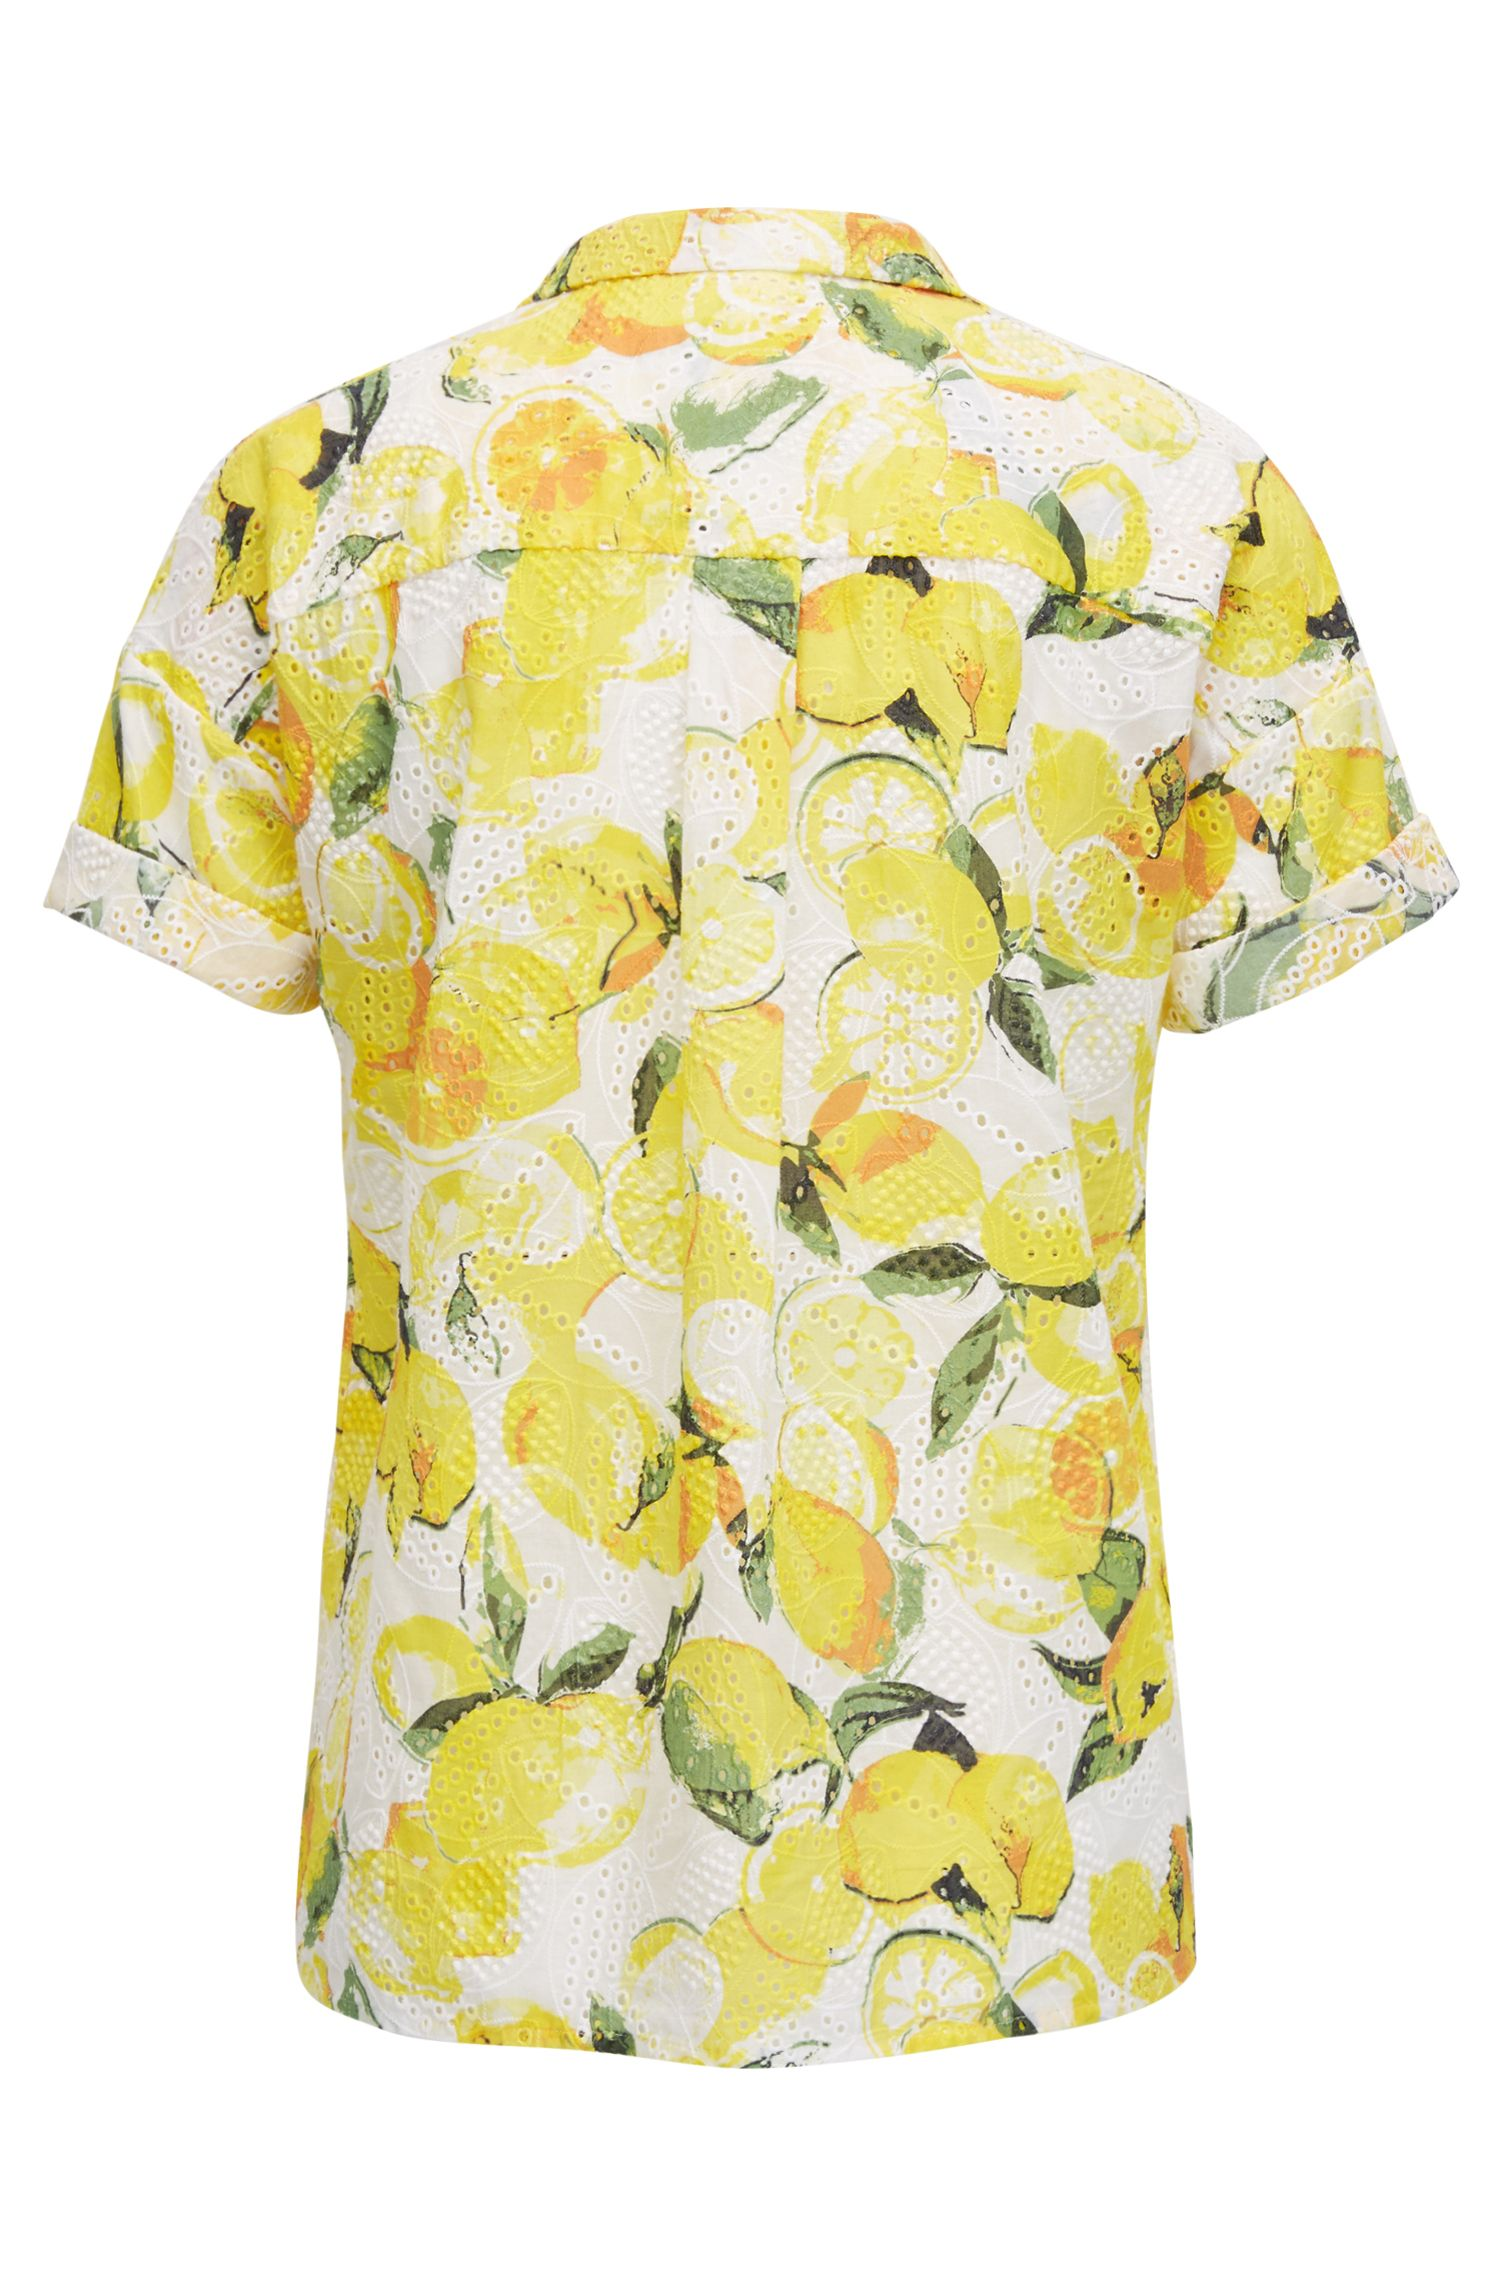 Cotton broderie-anglaise blouse with lemon print